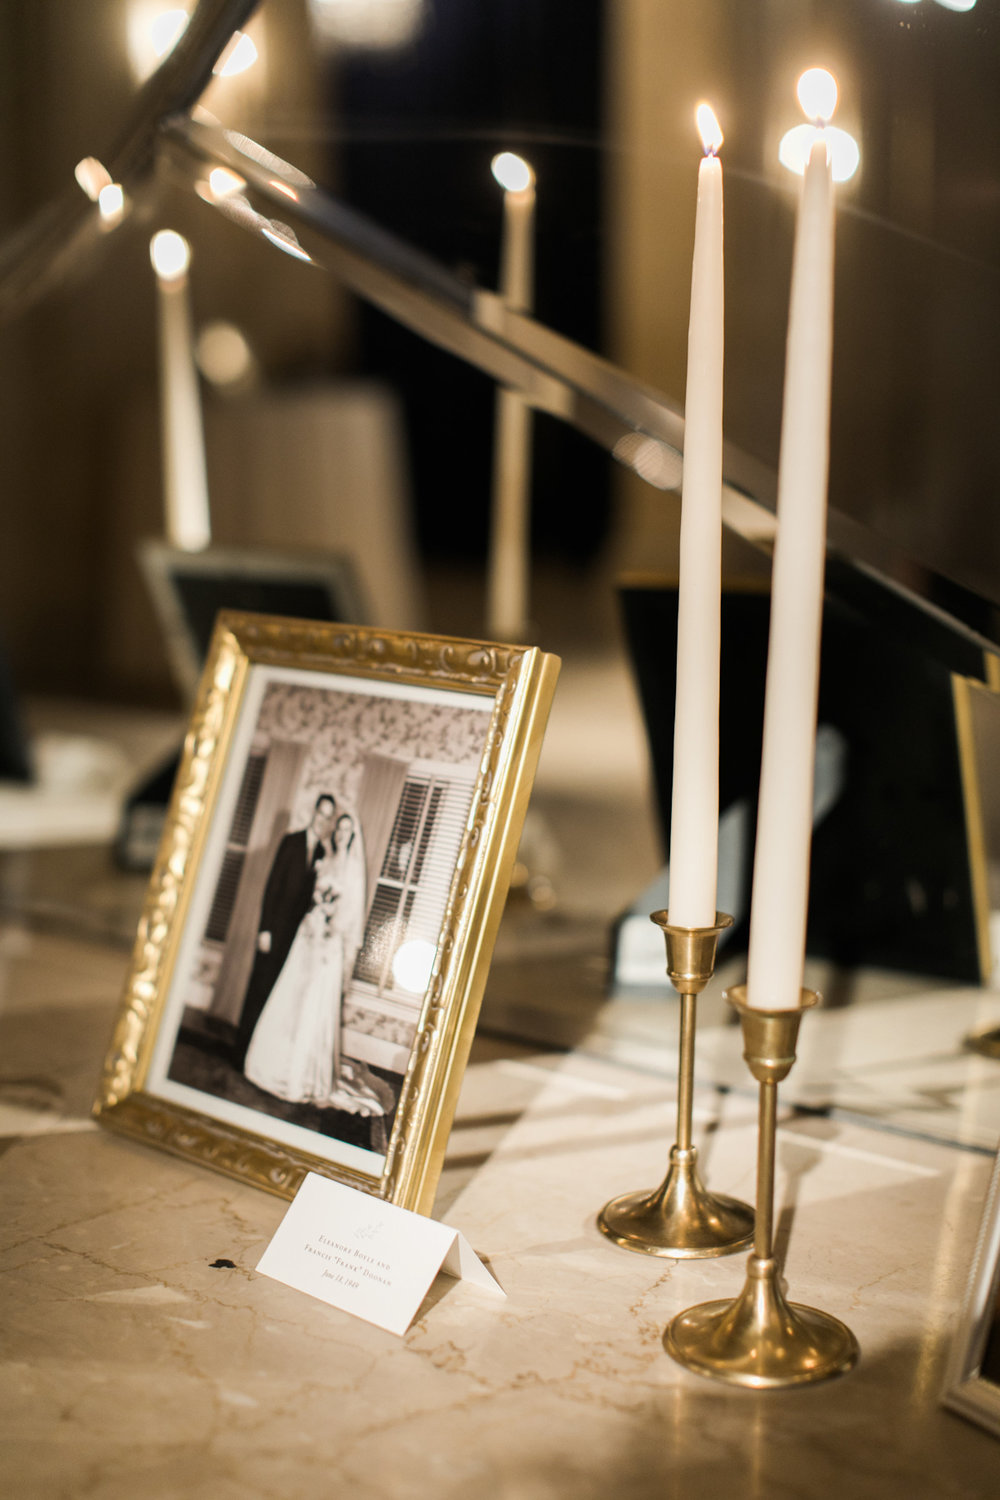 Framed family wedding photos with taper candles at Plaza wedding